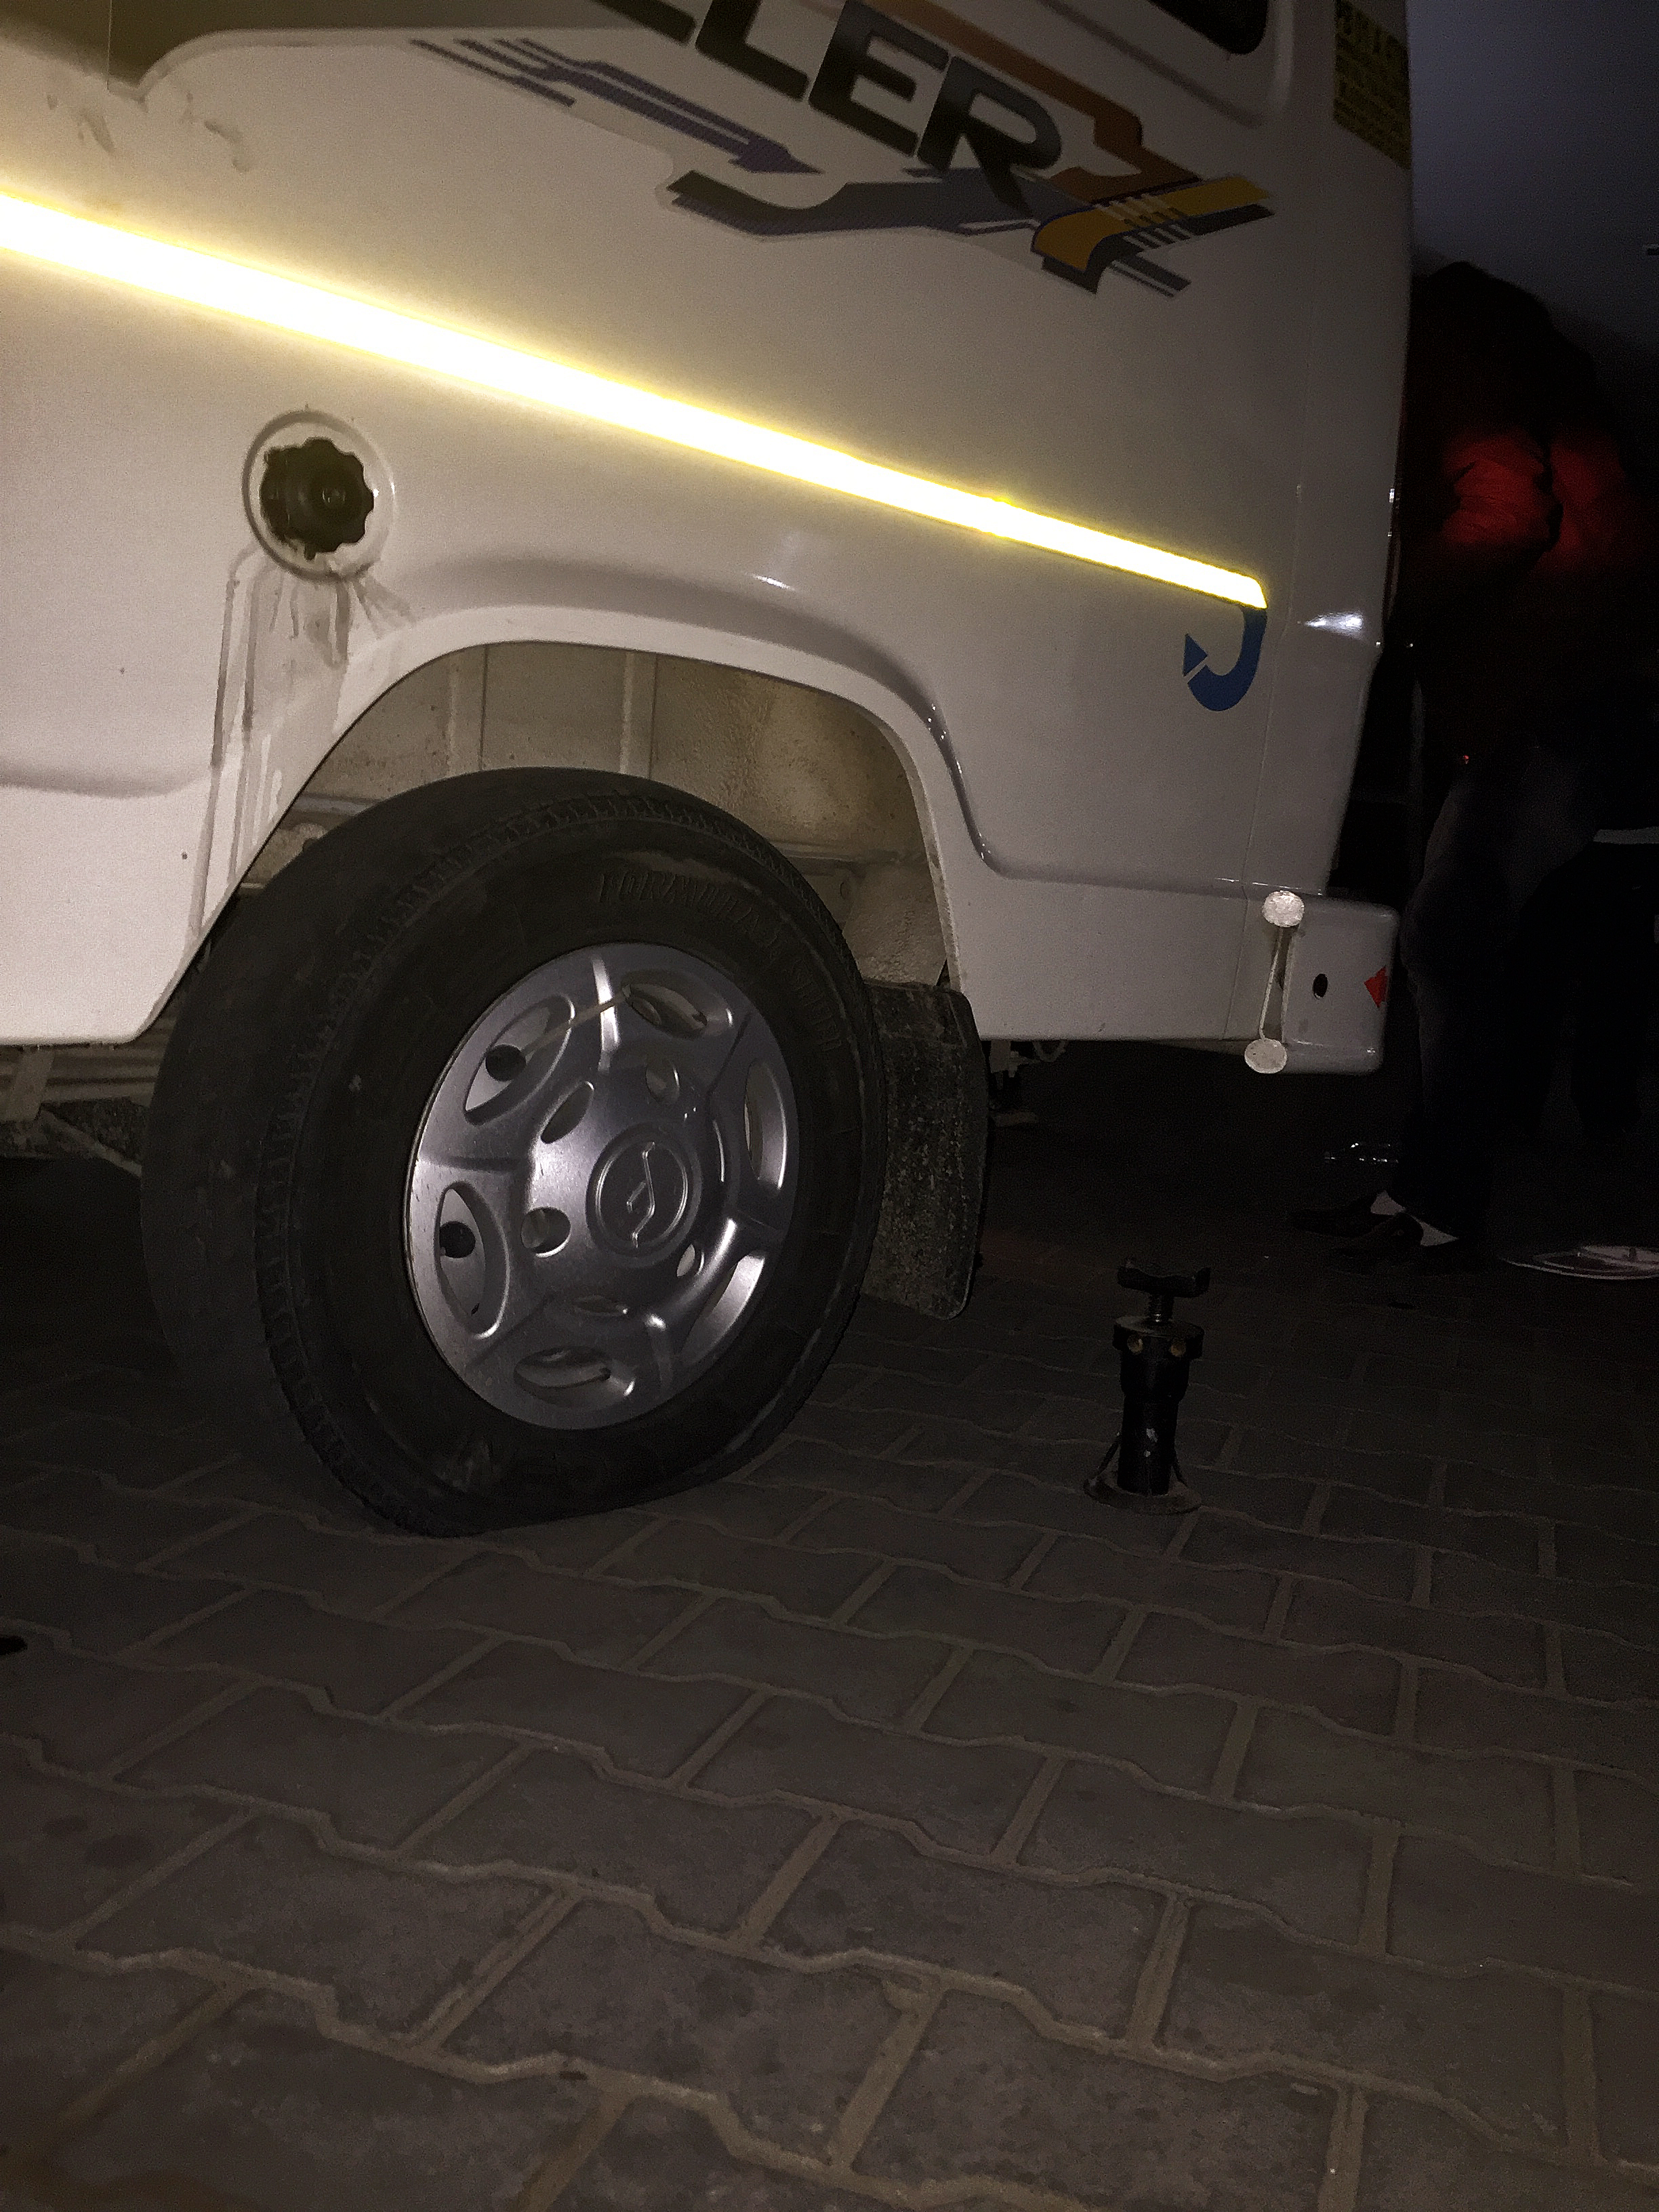 It took the driver about 40mins to change the flat tyre out. Most of us helped by shining our mobile phone lights so that he can see better.  (Image taken with iPhone 6+)